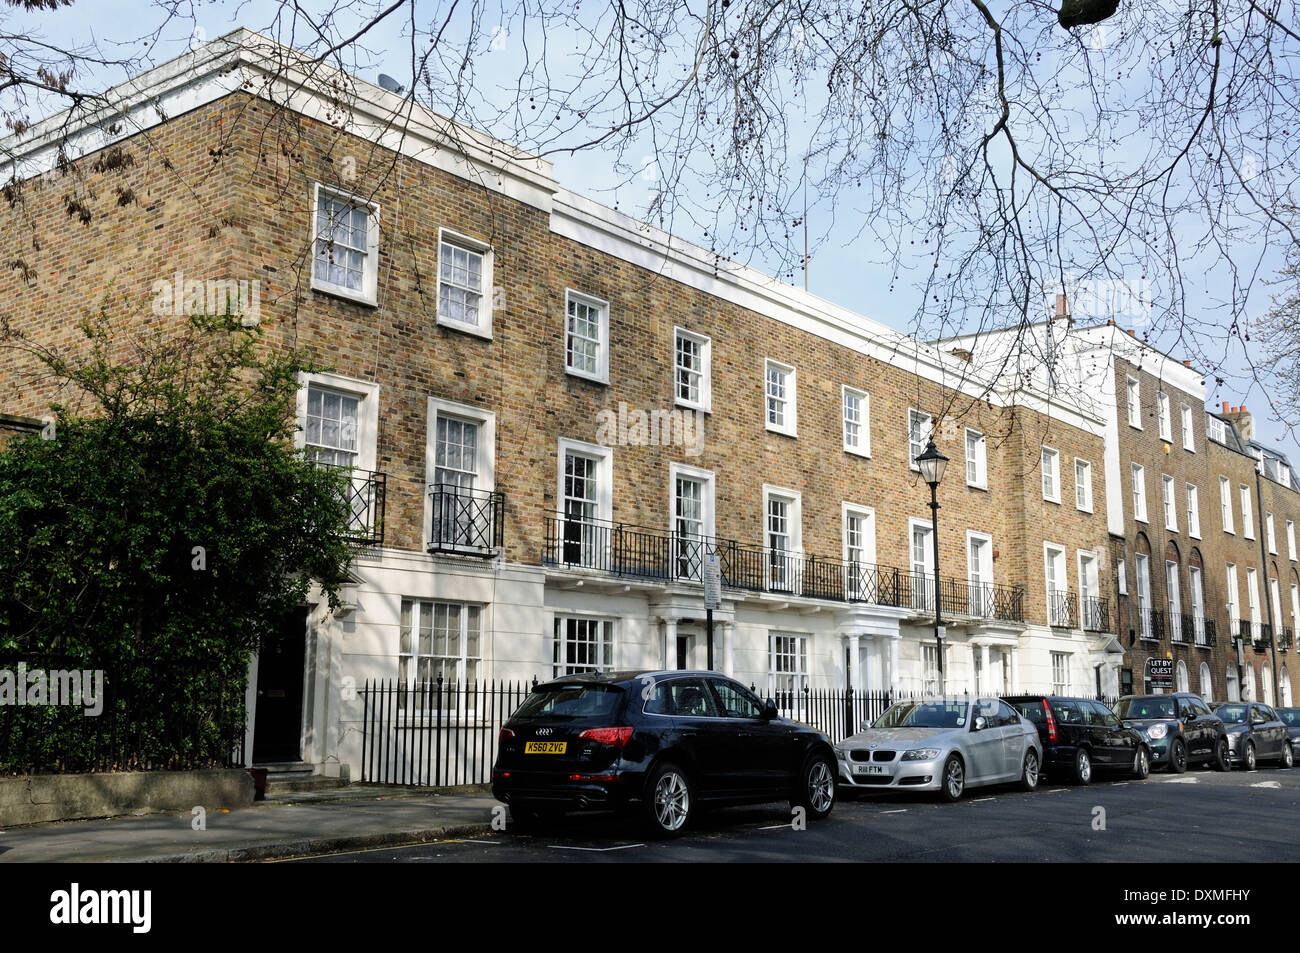 Terrace of neo Georgian houses in Canonbury Square, London Borough of Islington England Britain UK - Stock Image